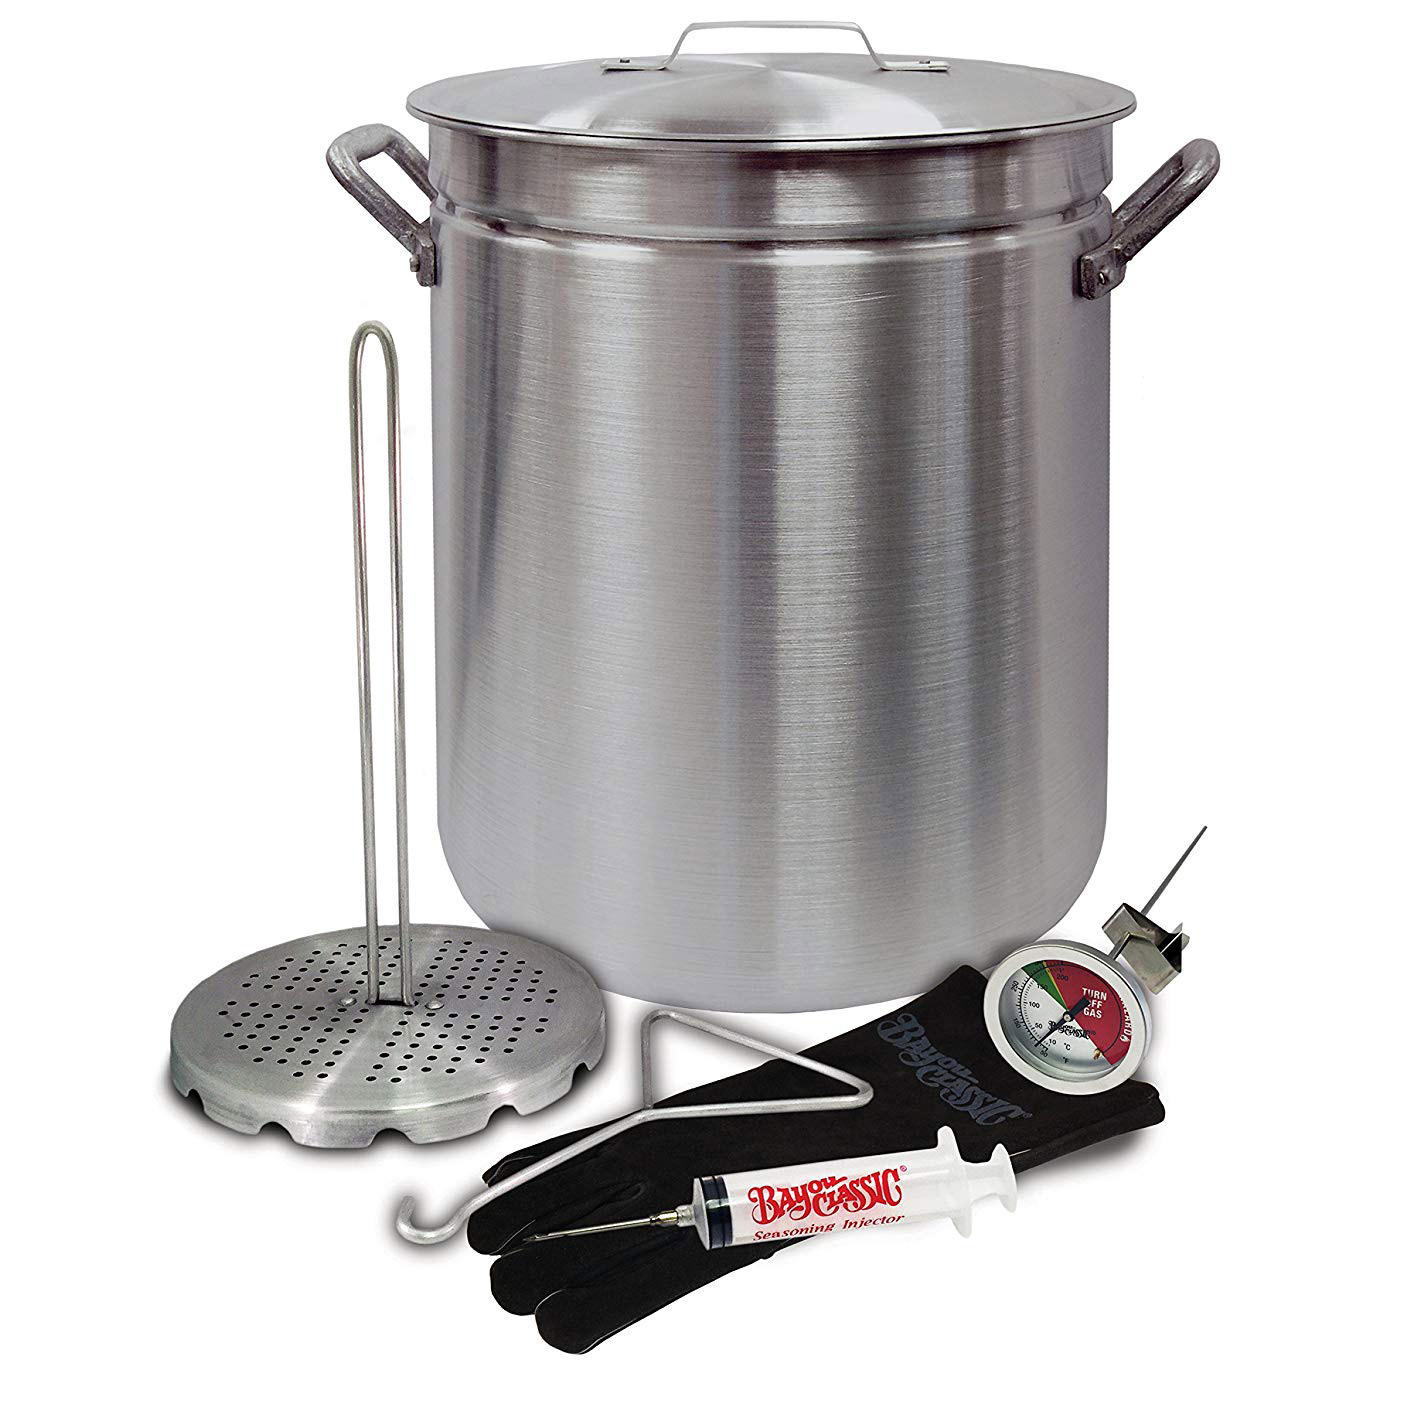 Bayou Classic 4225 42 Quart Aluminum Grand Gobbler Stockpot and Accessories